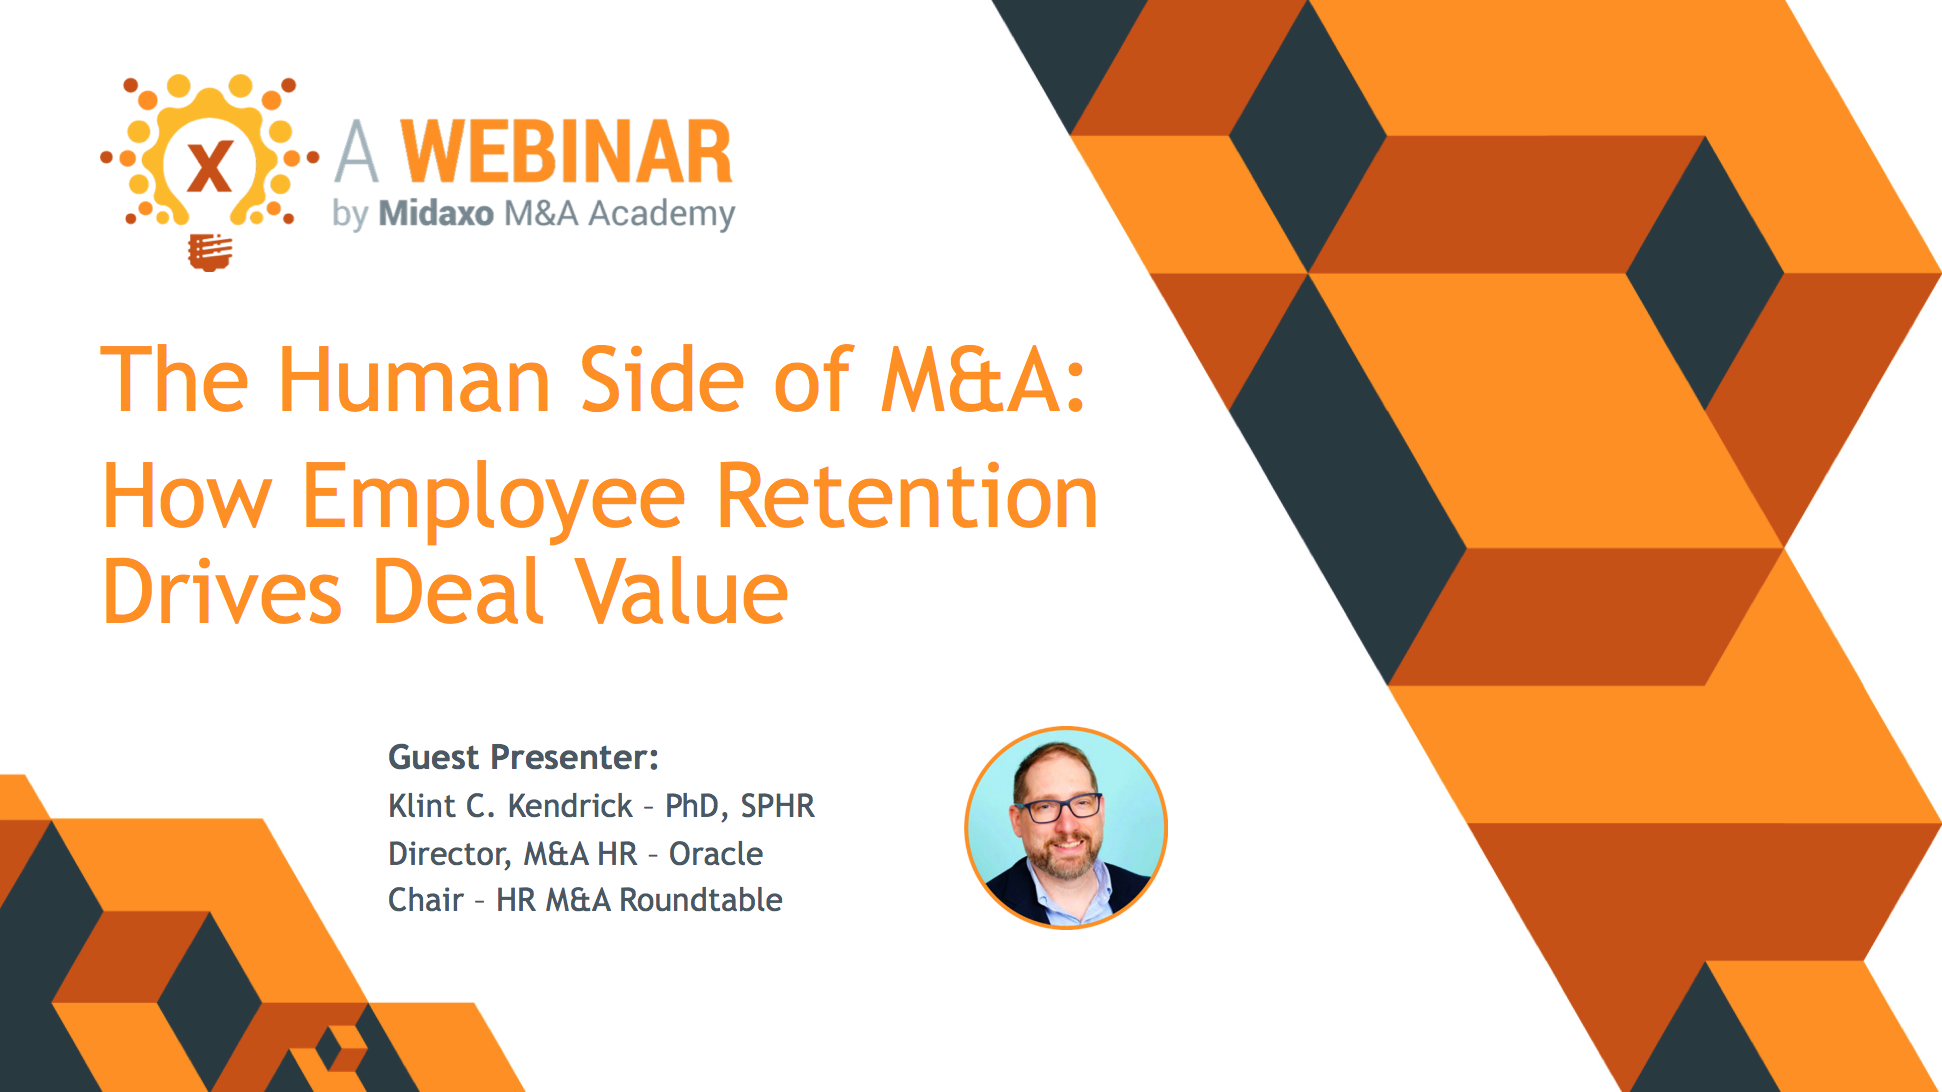 Webinar: The Human Side of M&A - How Employee Retention Drives Deal Value